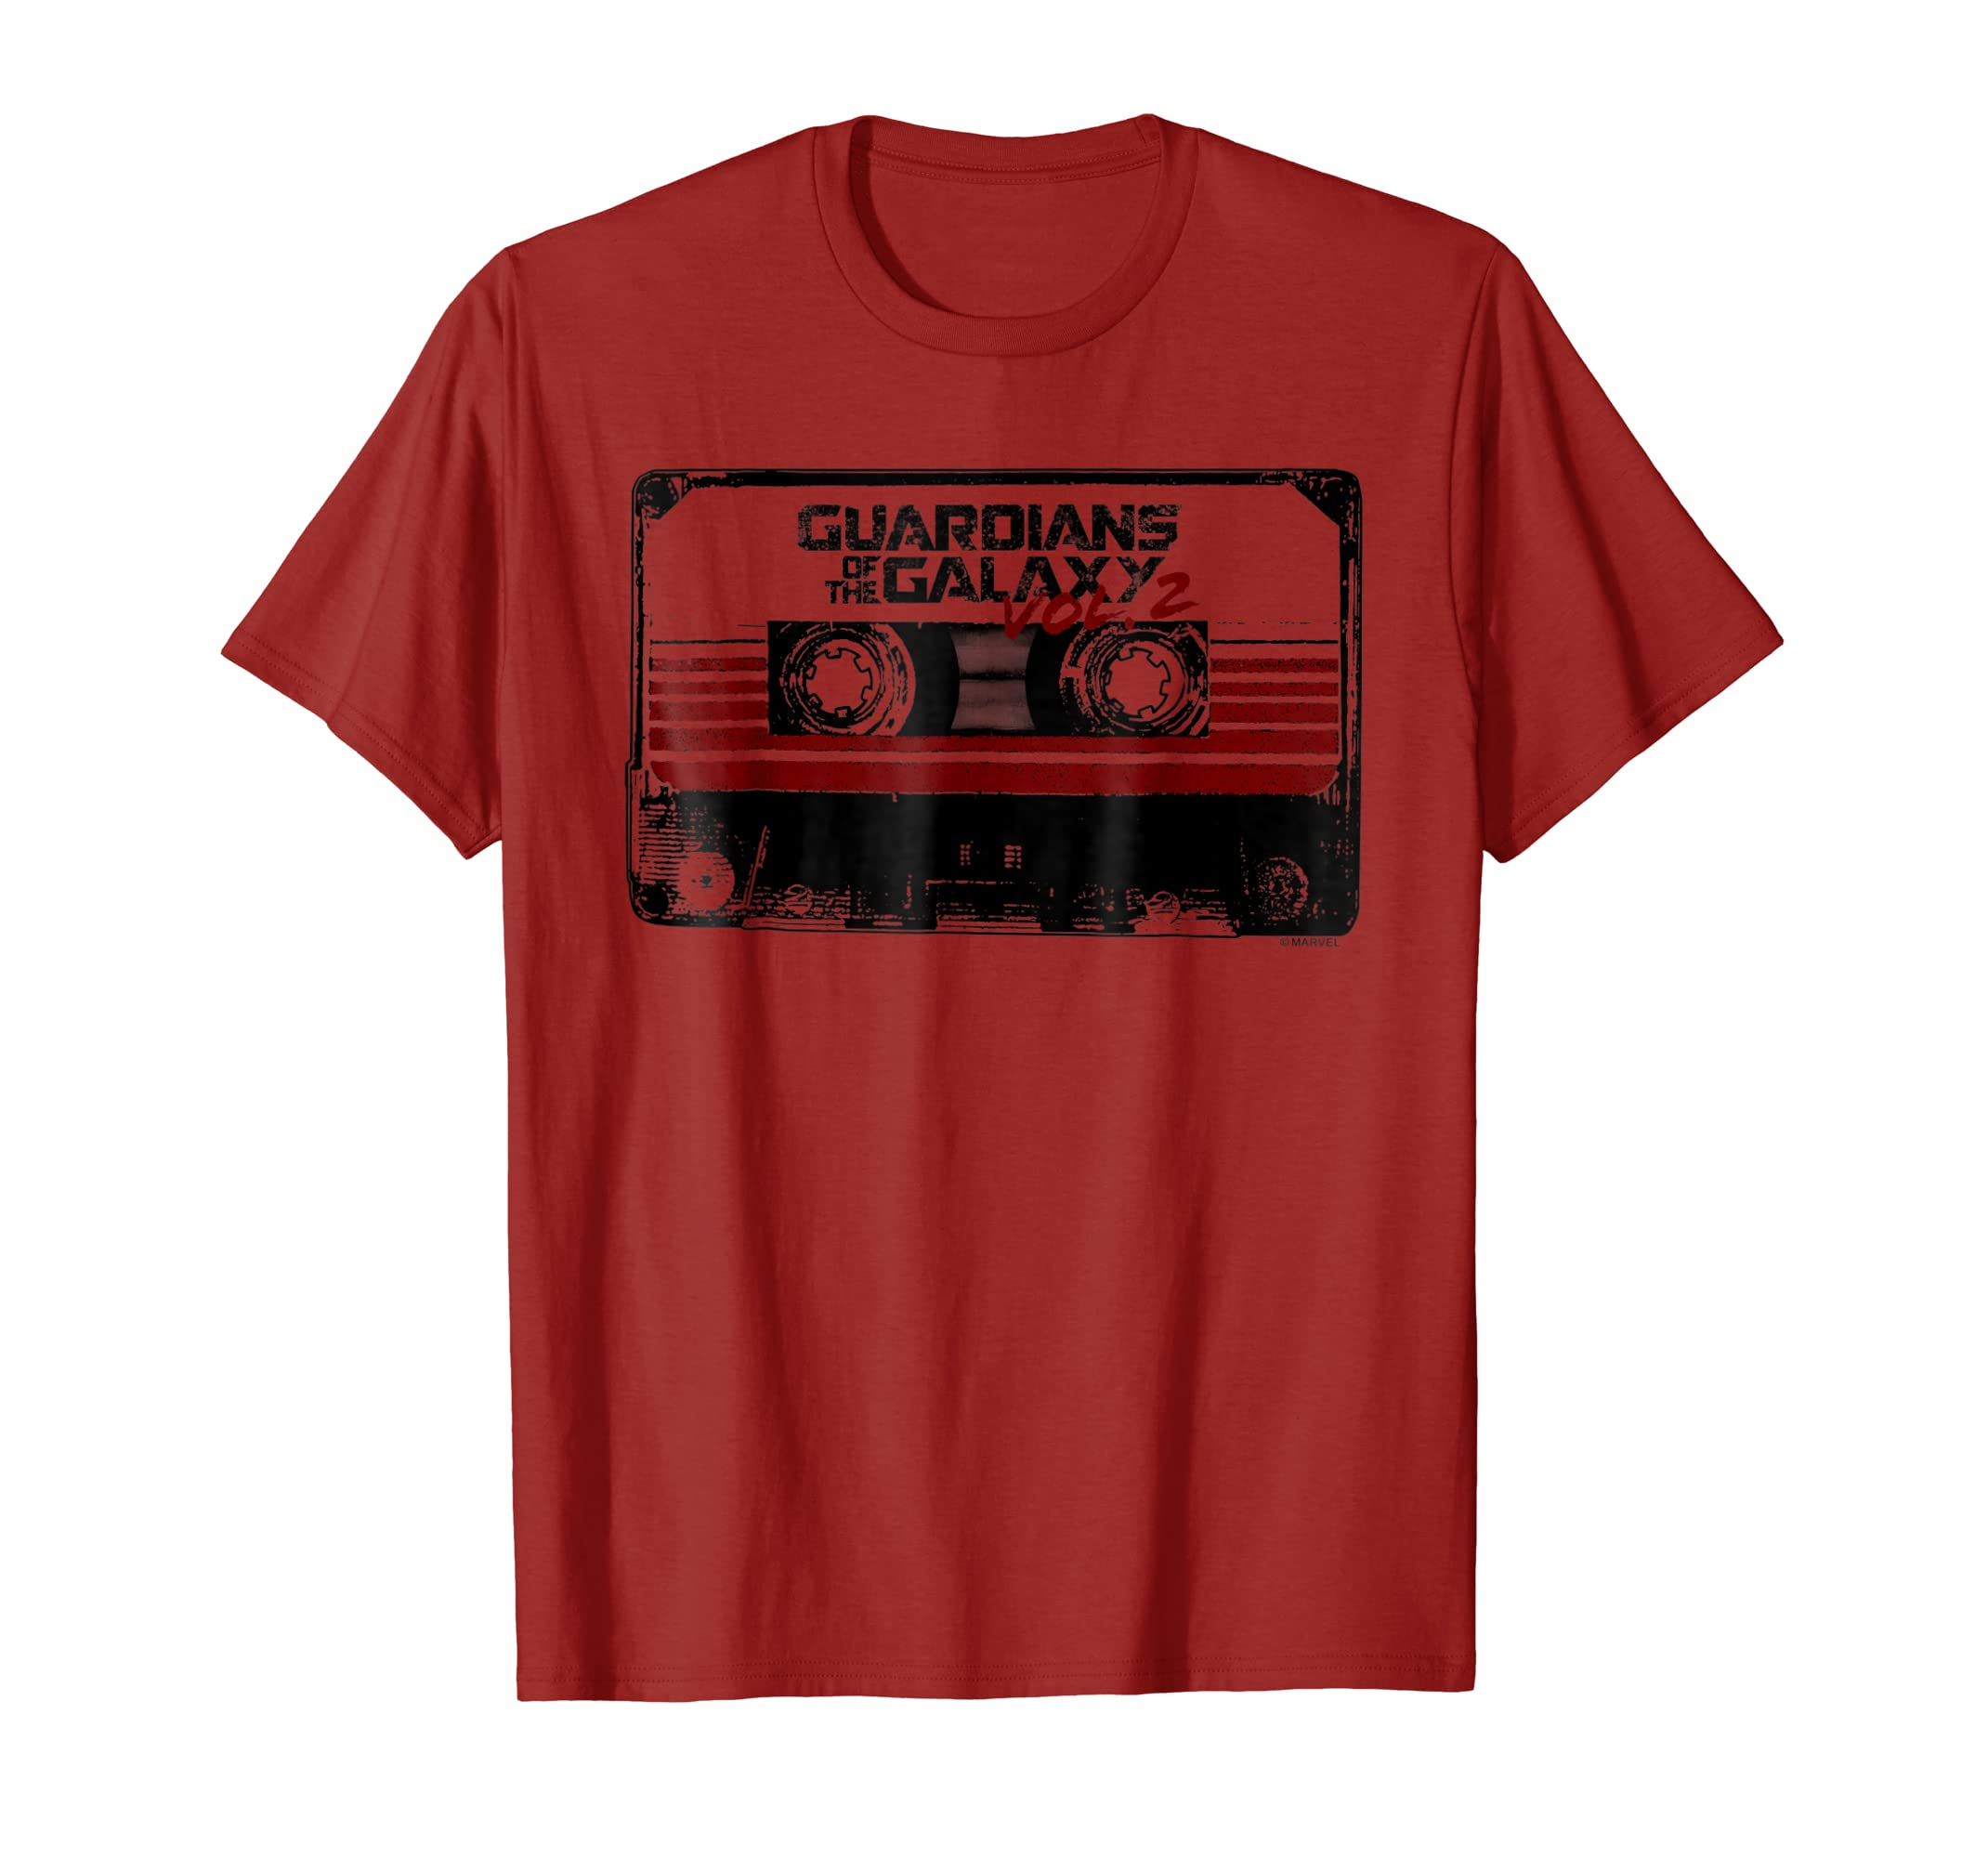 Guardians of the Galaxy 2 Cassette Graphic T Shirt-azvn